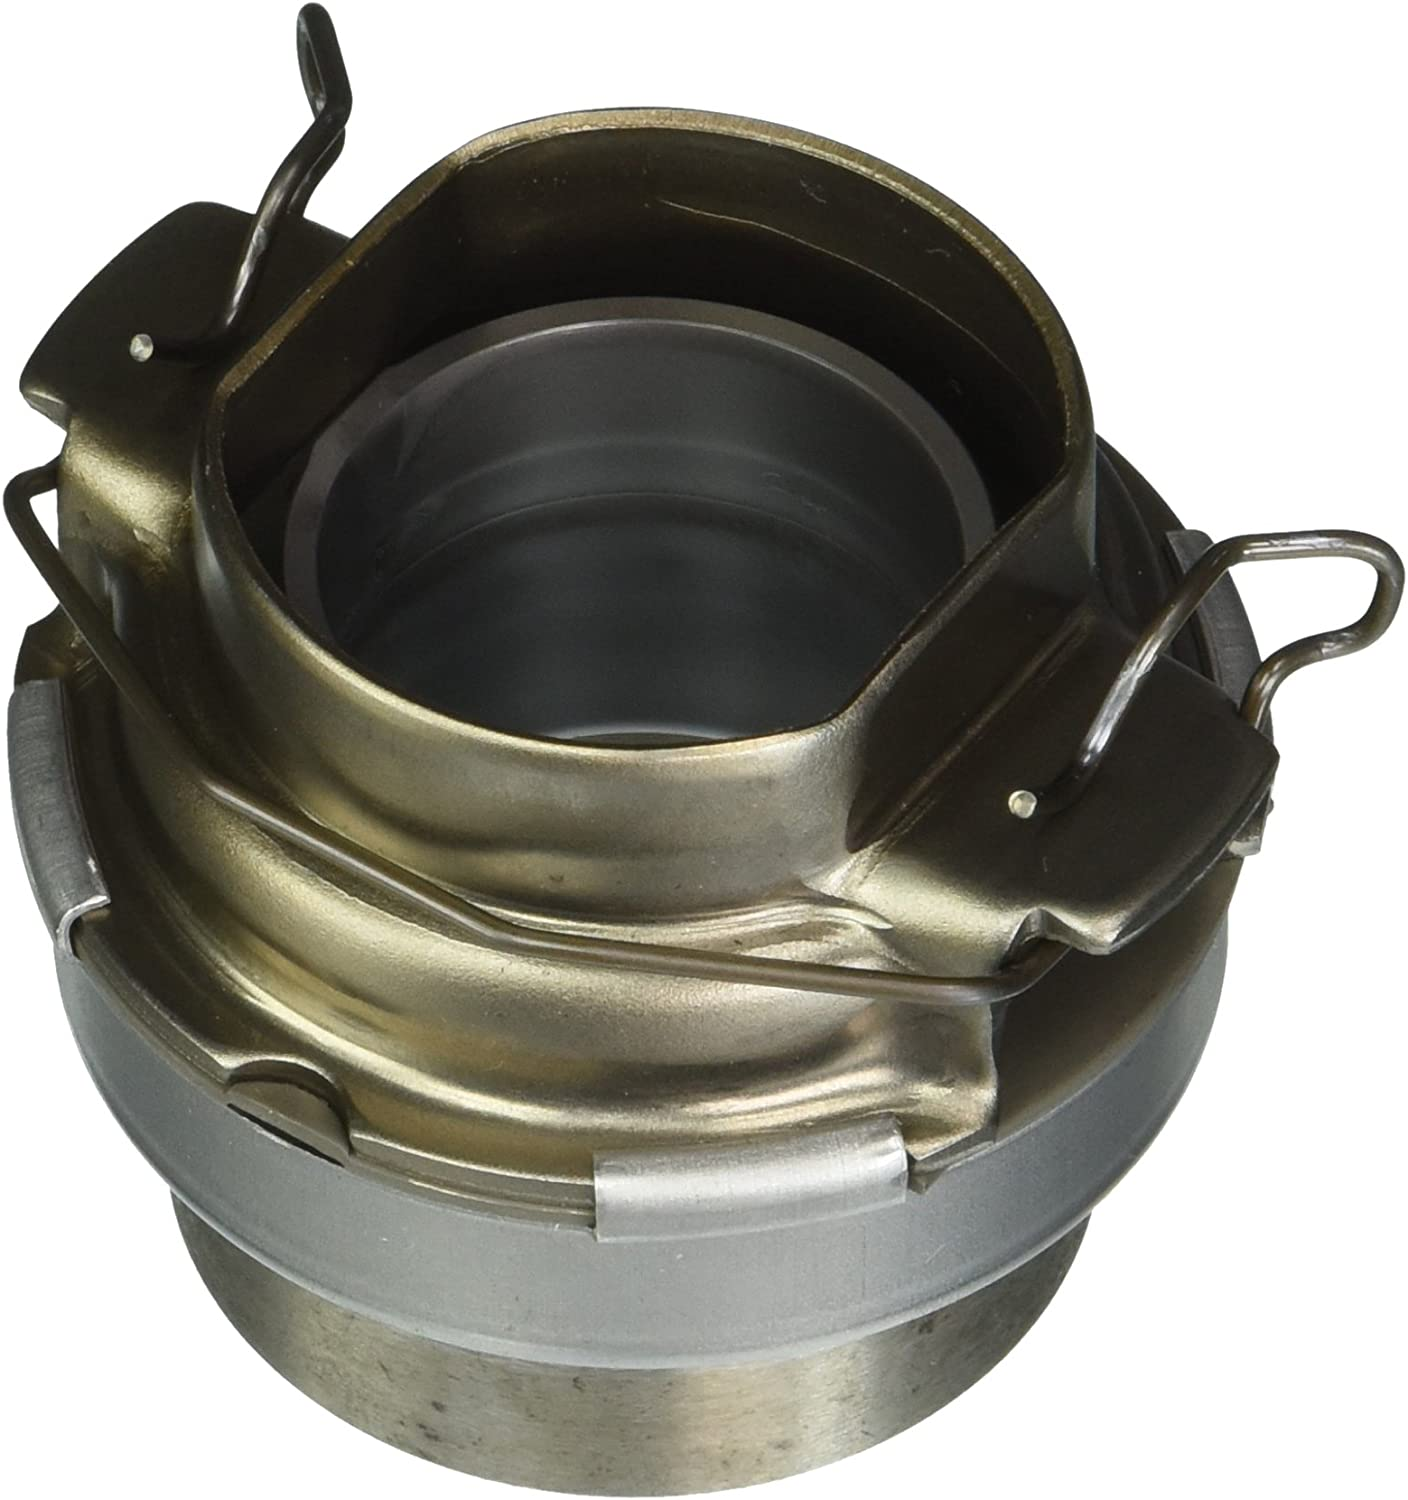 TOYOTA Genuine 31230-35110 Clutch Max 35% OFF 49% OFF Assembly Bearing